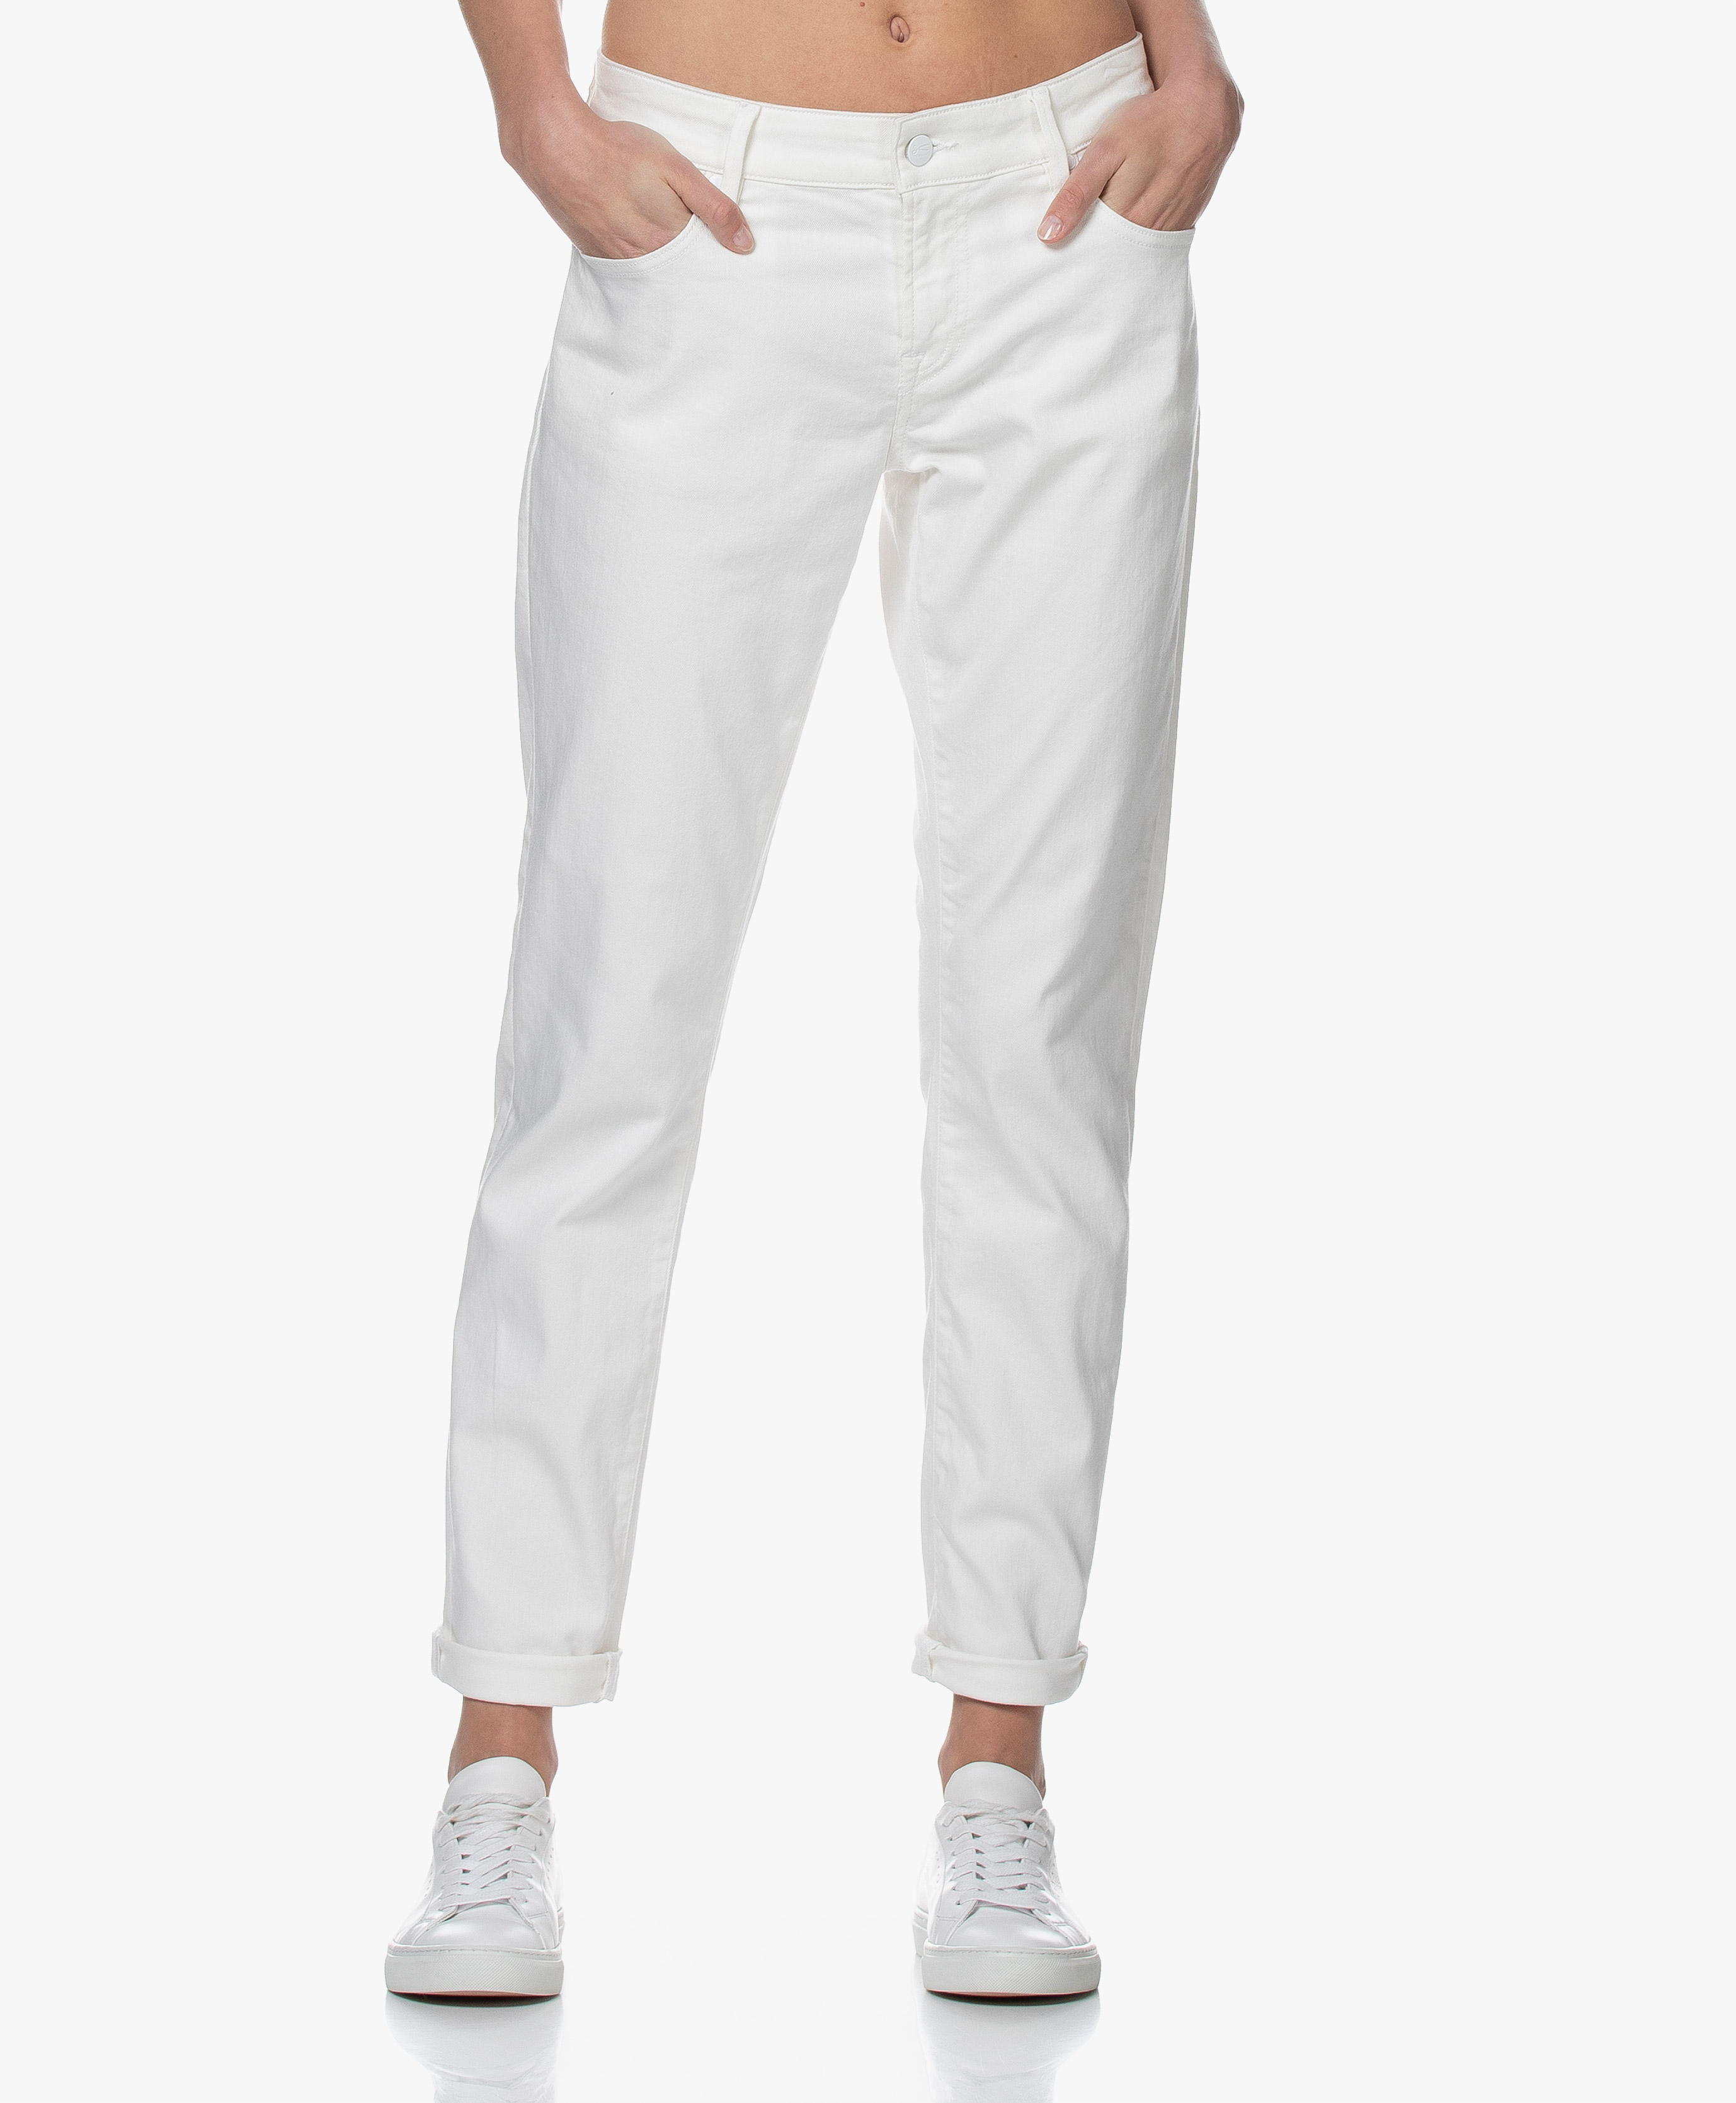 Denham Monroe FMW Girlfriend Fit Jeans Off white monroe